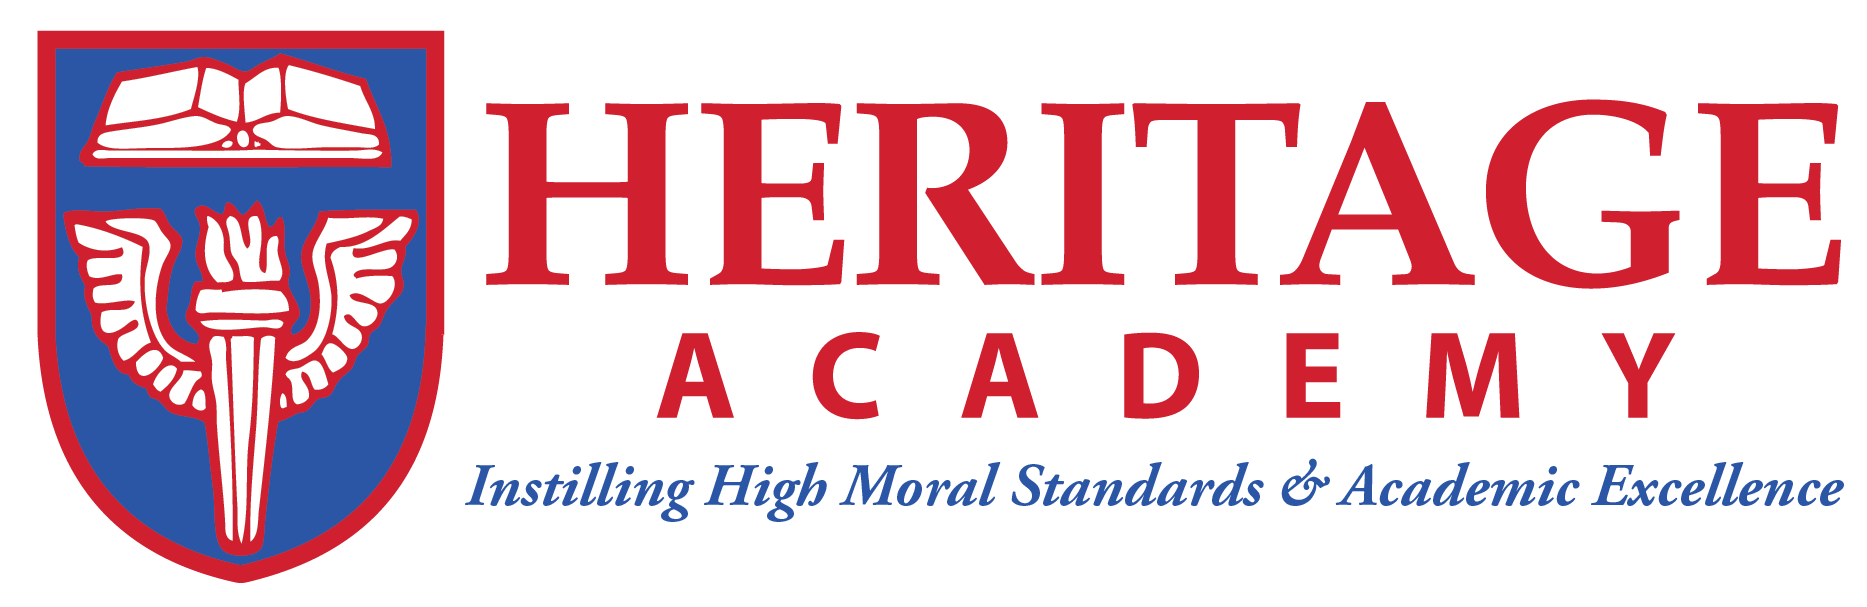 Heritage Academy - Instilling High Moral Standards & Academic Excellence